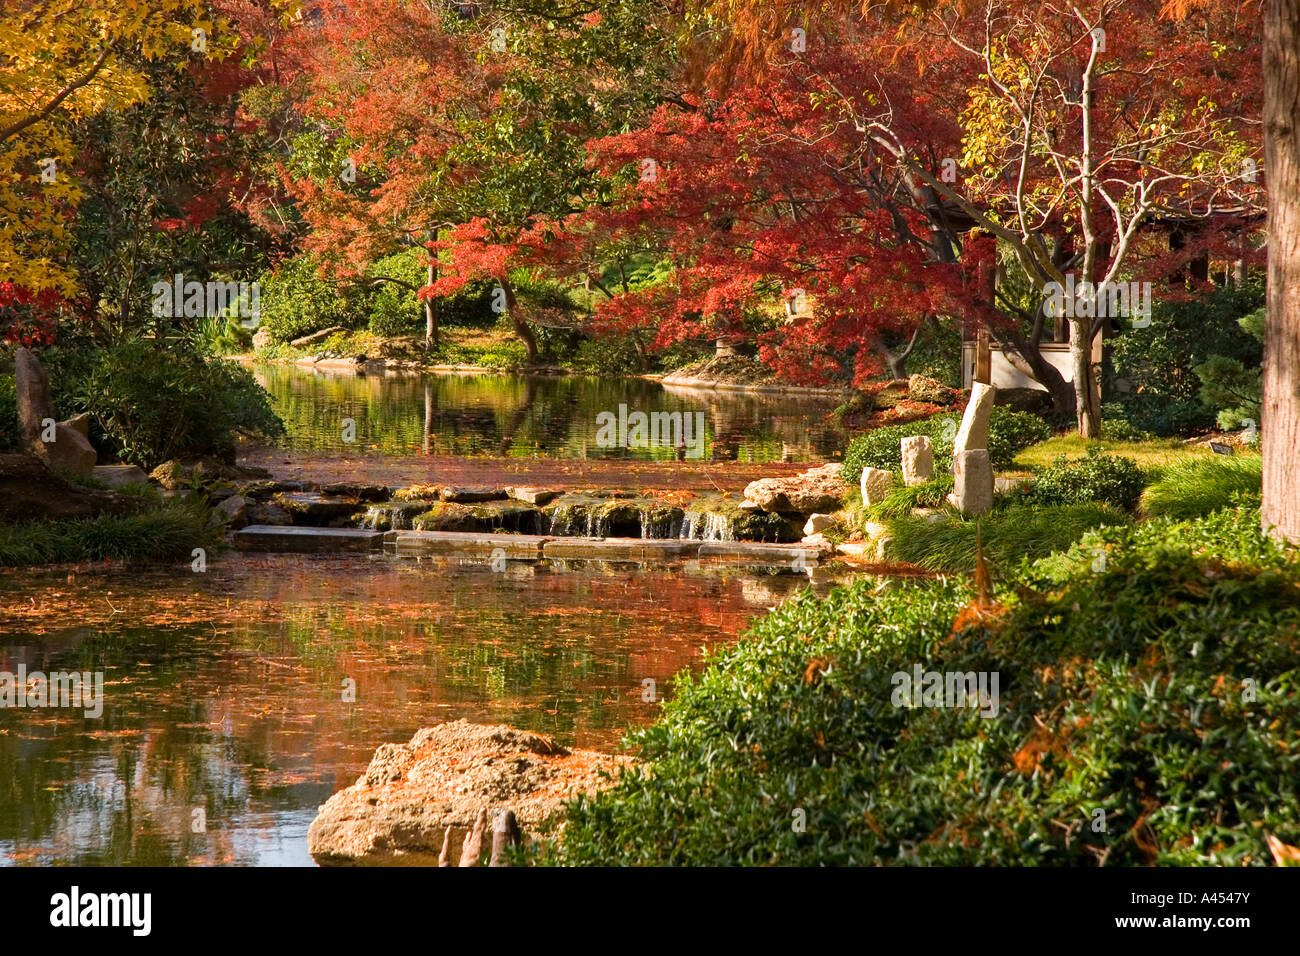 Tranquil Fall Colourful Scene, Waterfalls, Pond, Japanese Botanical Gardens,  Fort Worth, Texas